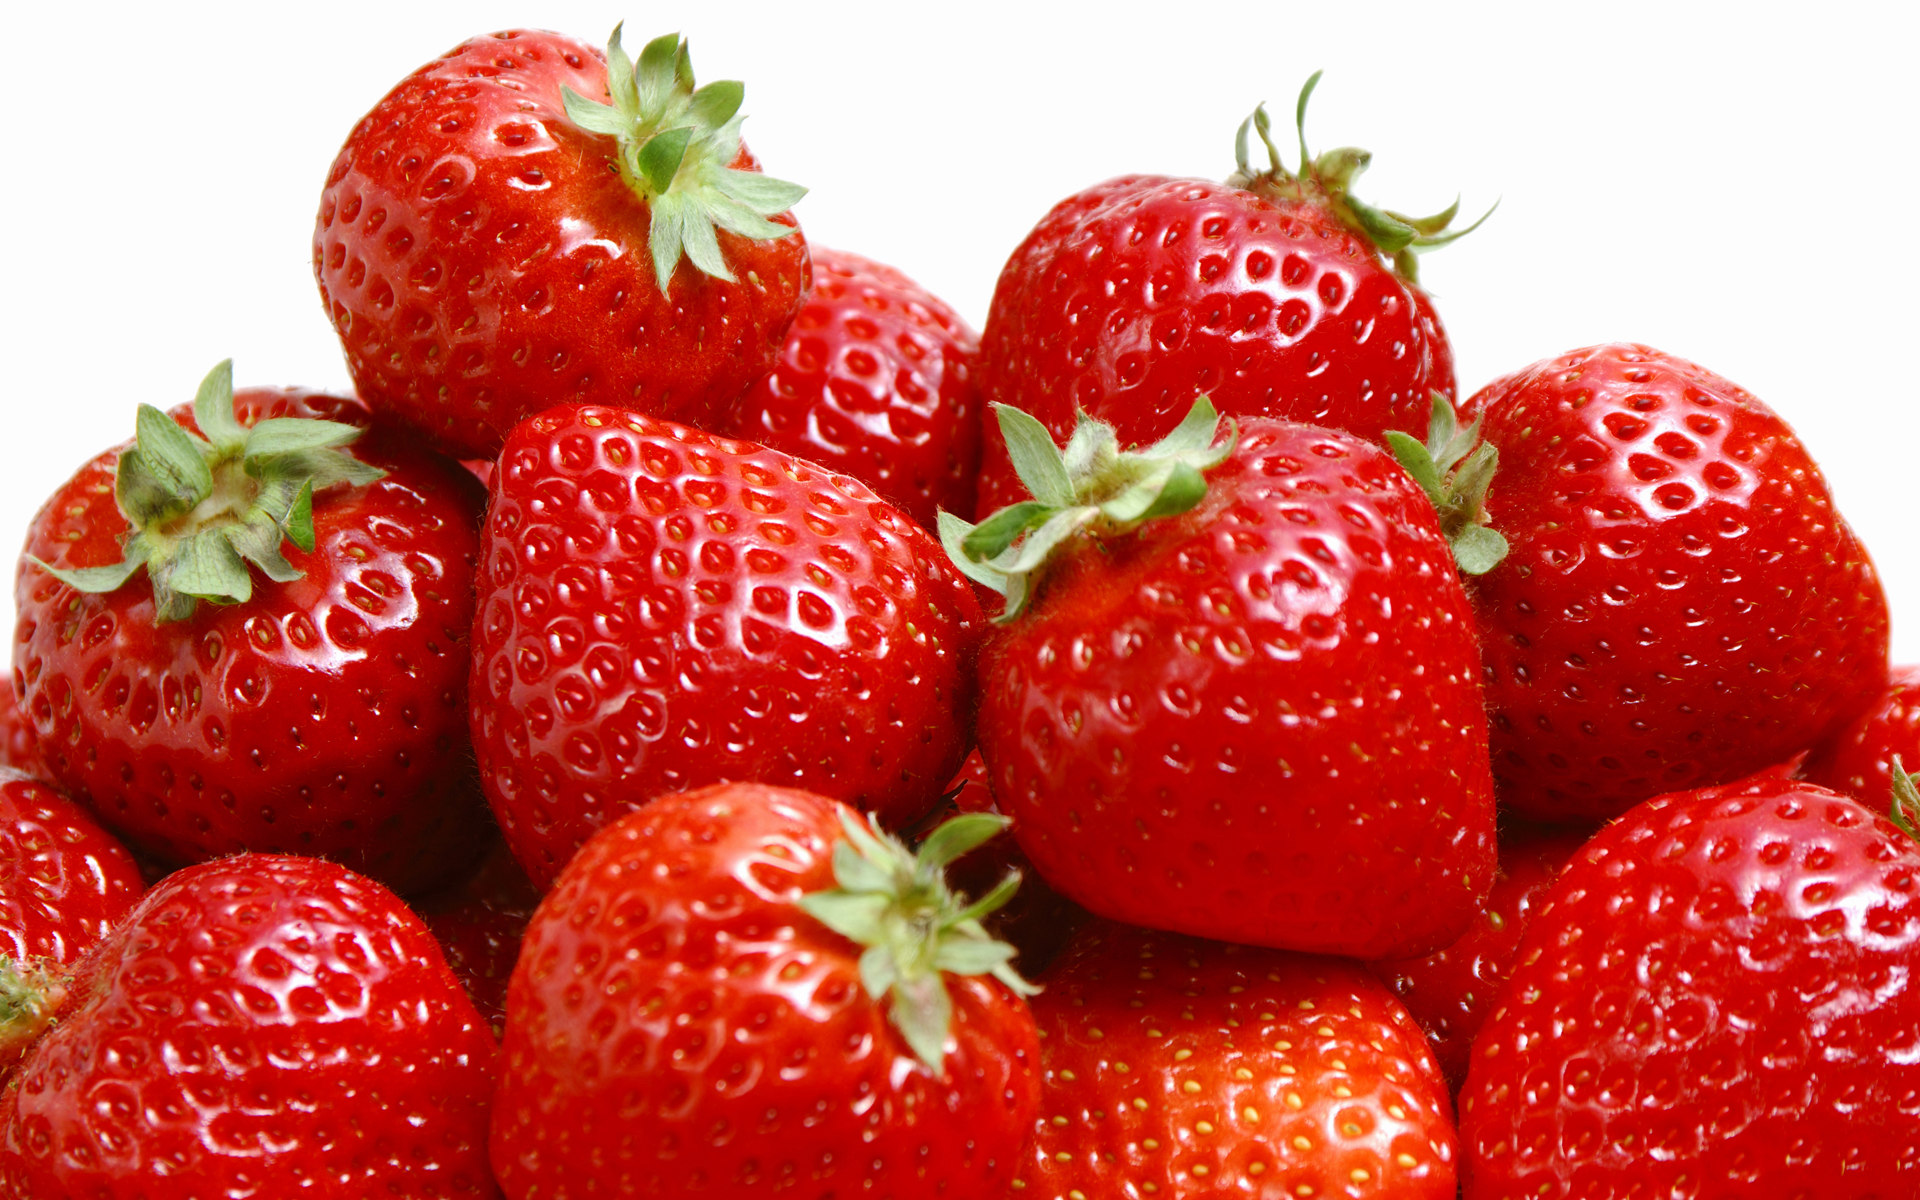 strawberries are the queen of all fruits!